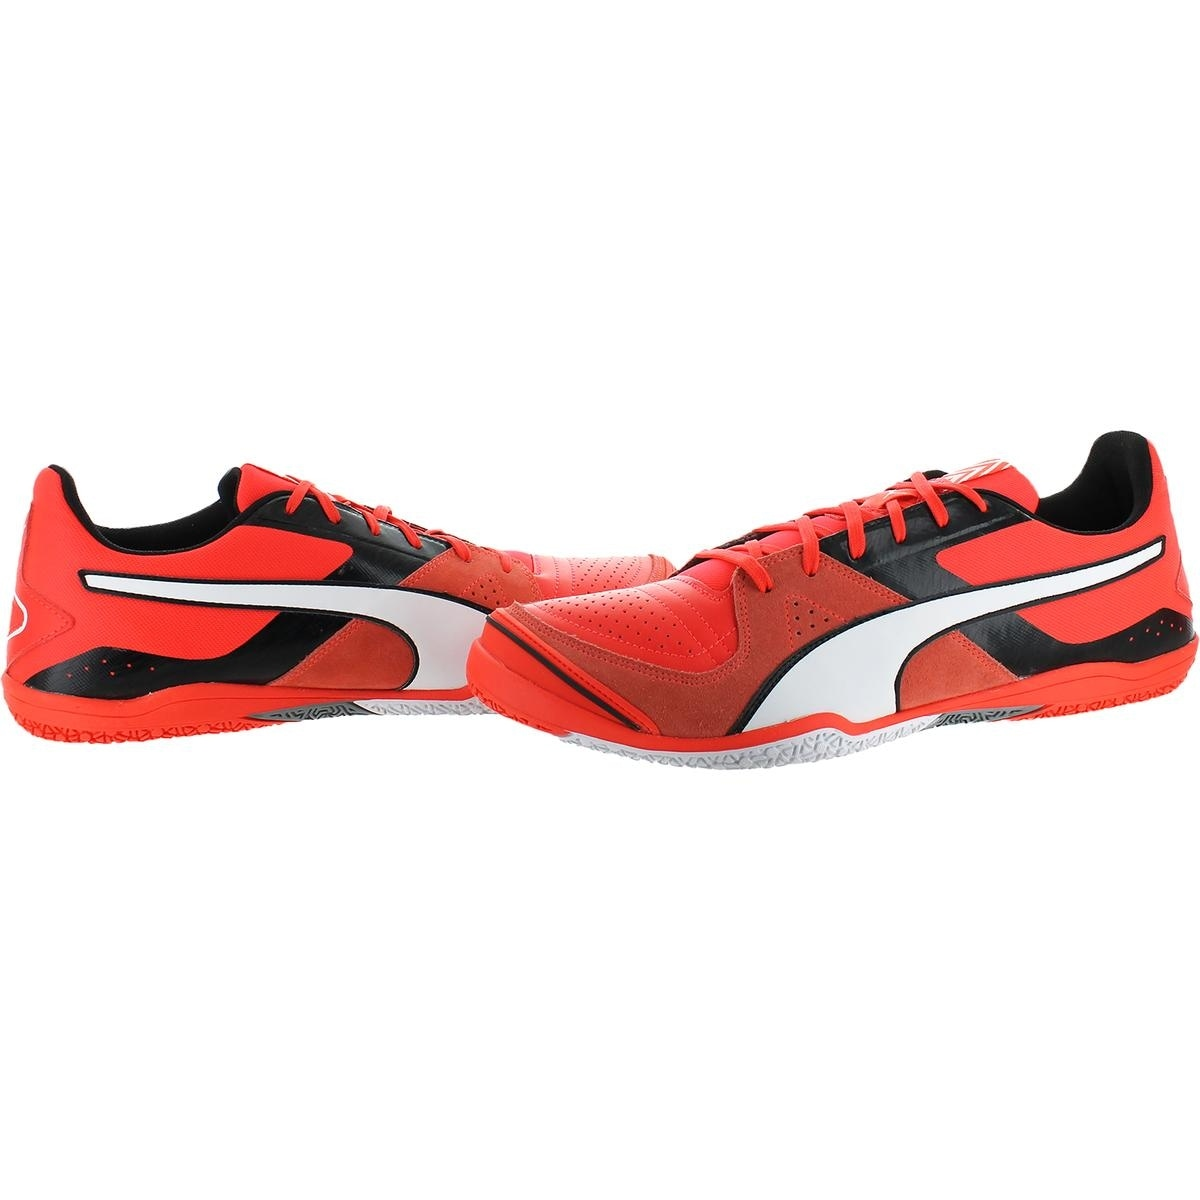 e779165ff65 Shop Puma Mens Invicto Sala Soccer Shoes Suede Non-Marking Pink 9 Medium  (D) - 9 medium (d) - Free Shipping Today - Overstock - 22123061